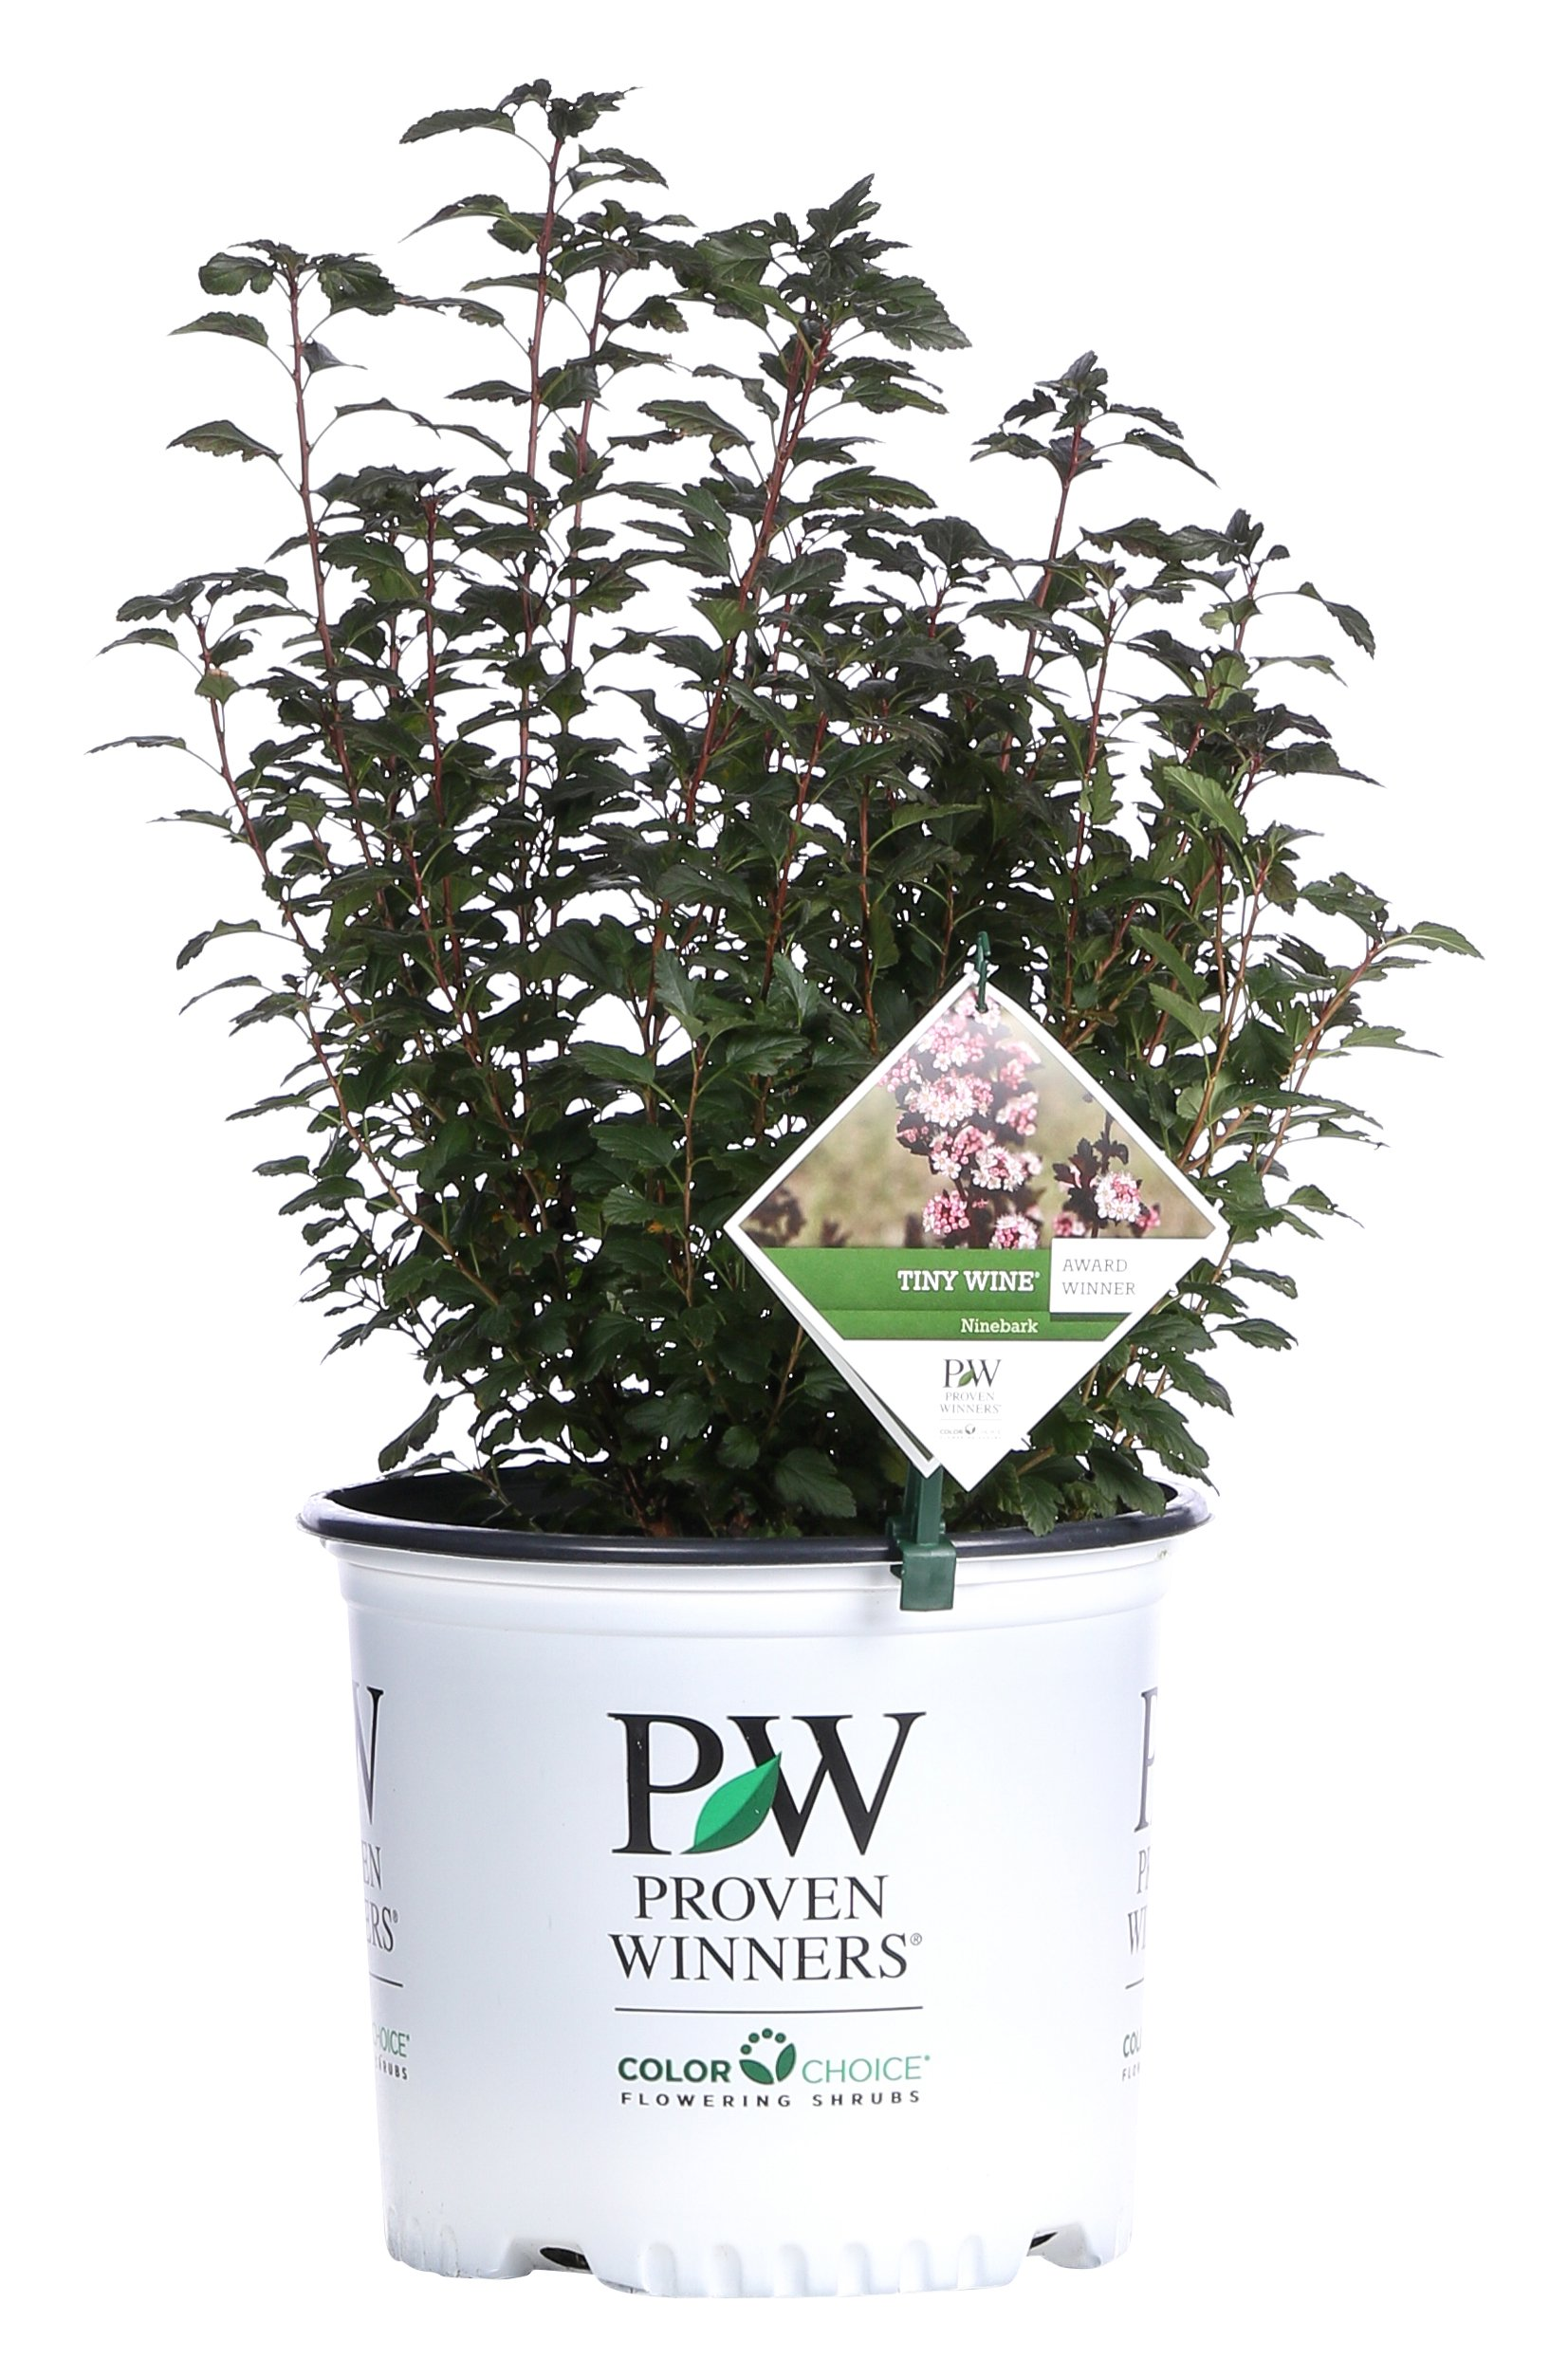 Tiny Wine Ninebark (Physocarpus) Live Shrub, White Flowers and Purple Foliage, 3 Gallon by Proven Winners